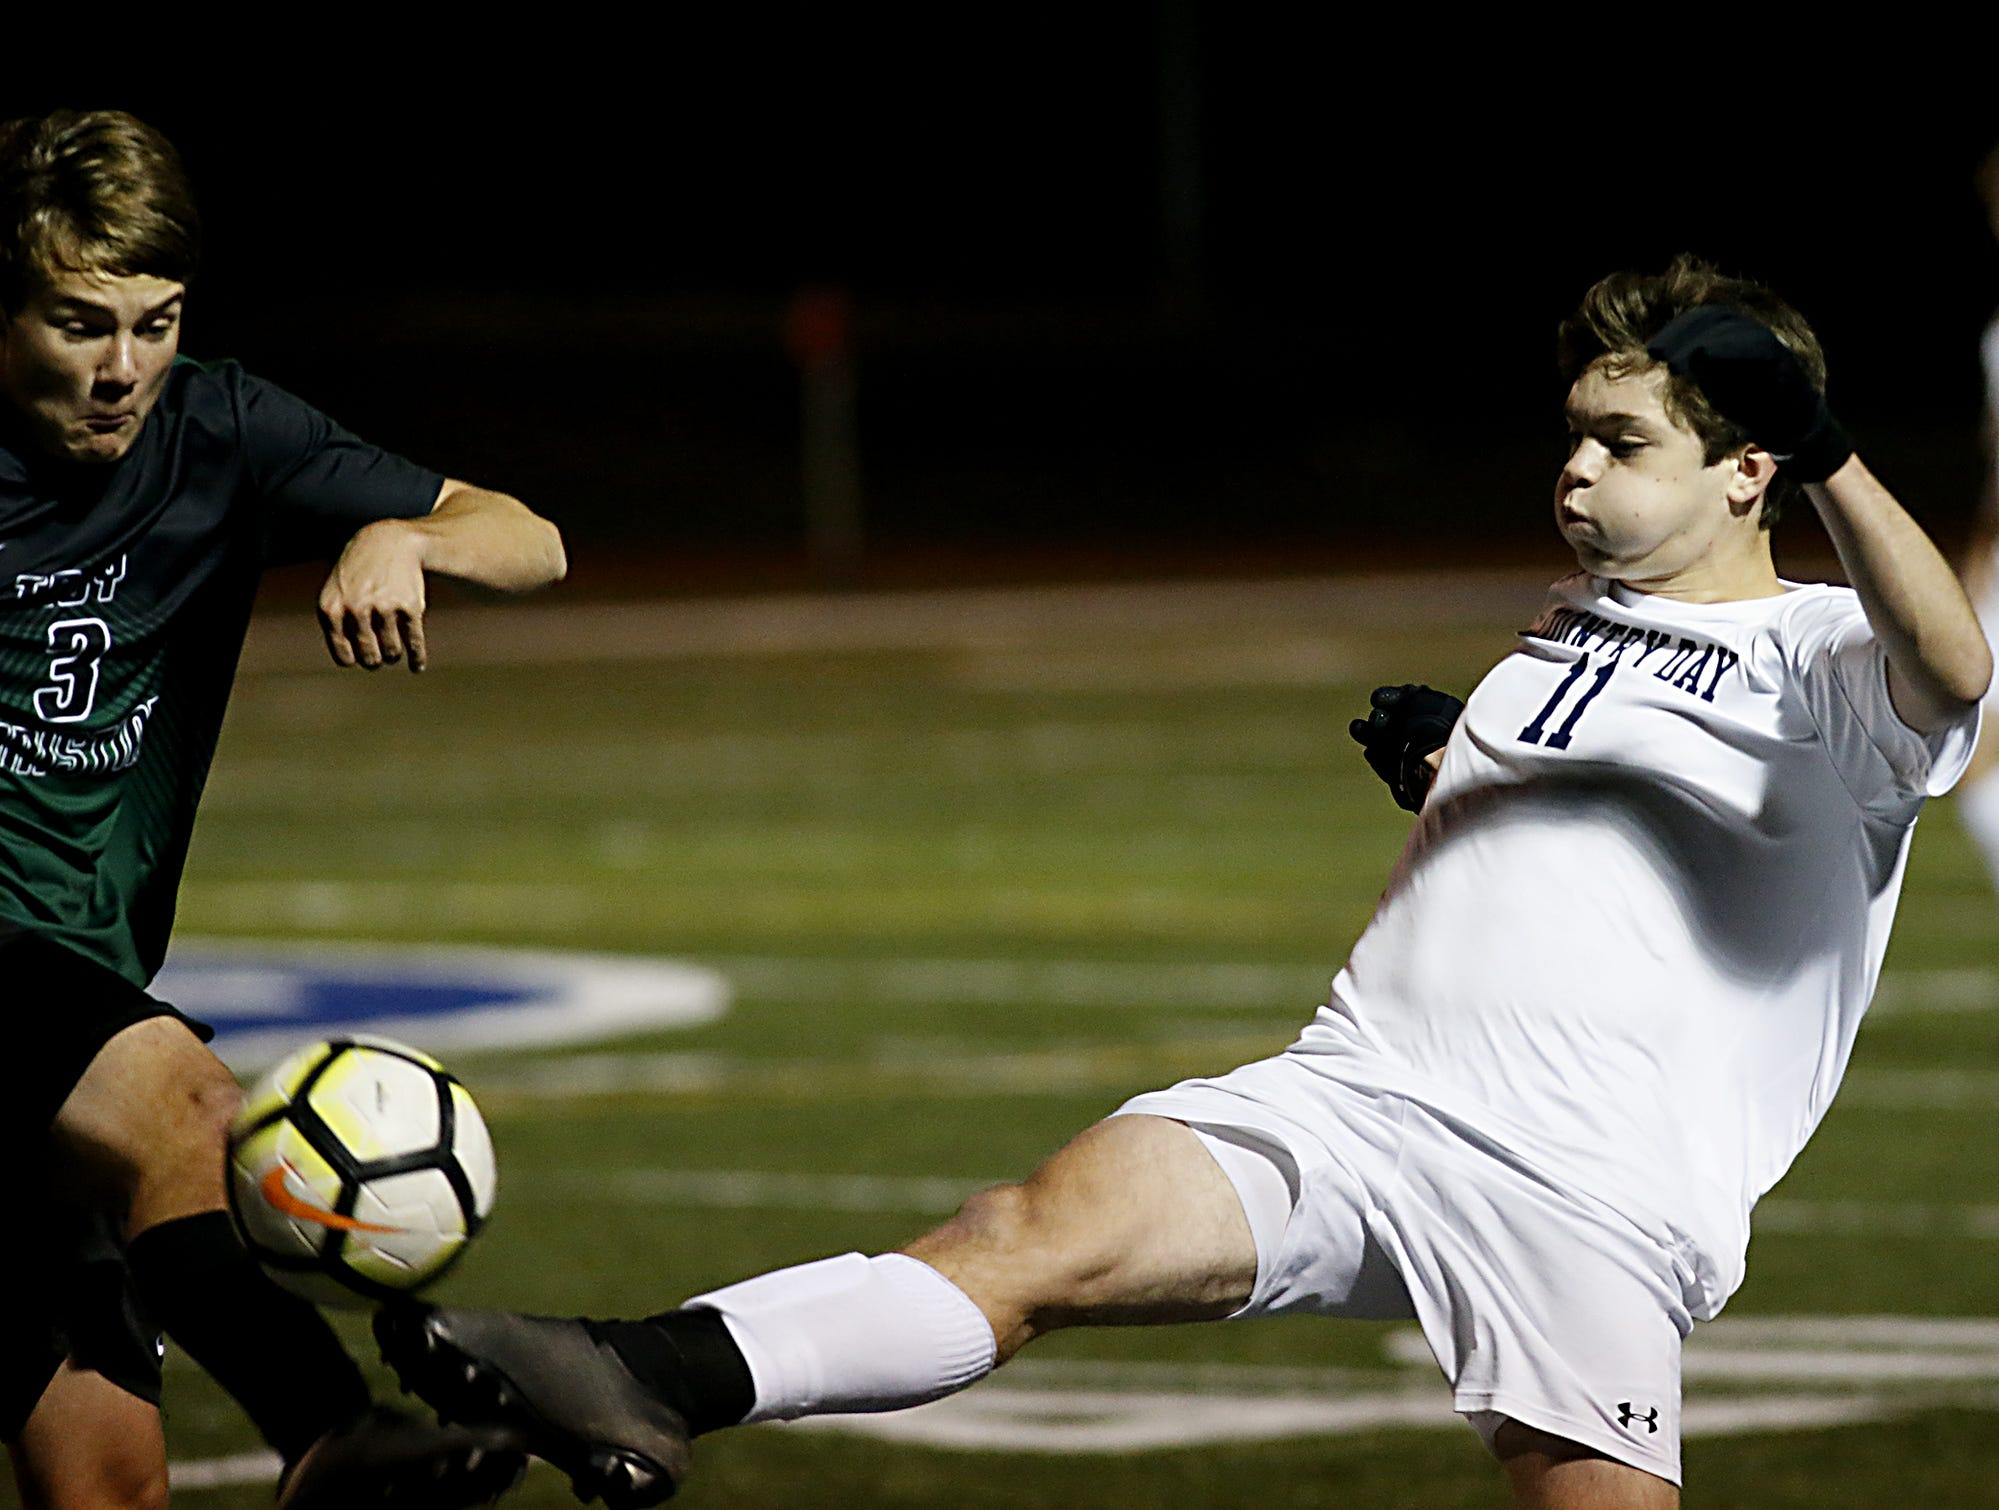 CCD midfielder Riley Michalski gets his foot on the ball before Troy Christian defender Ty Davis during their Division III district final soccer match at Wyoming Thursday, Oct. 25, 2018.